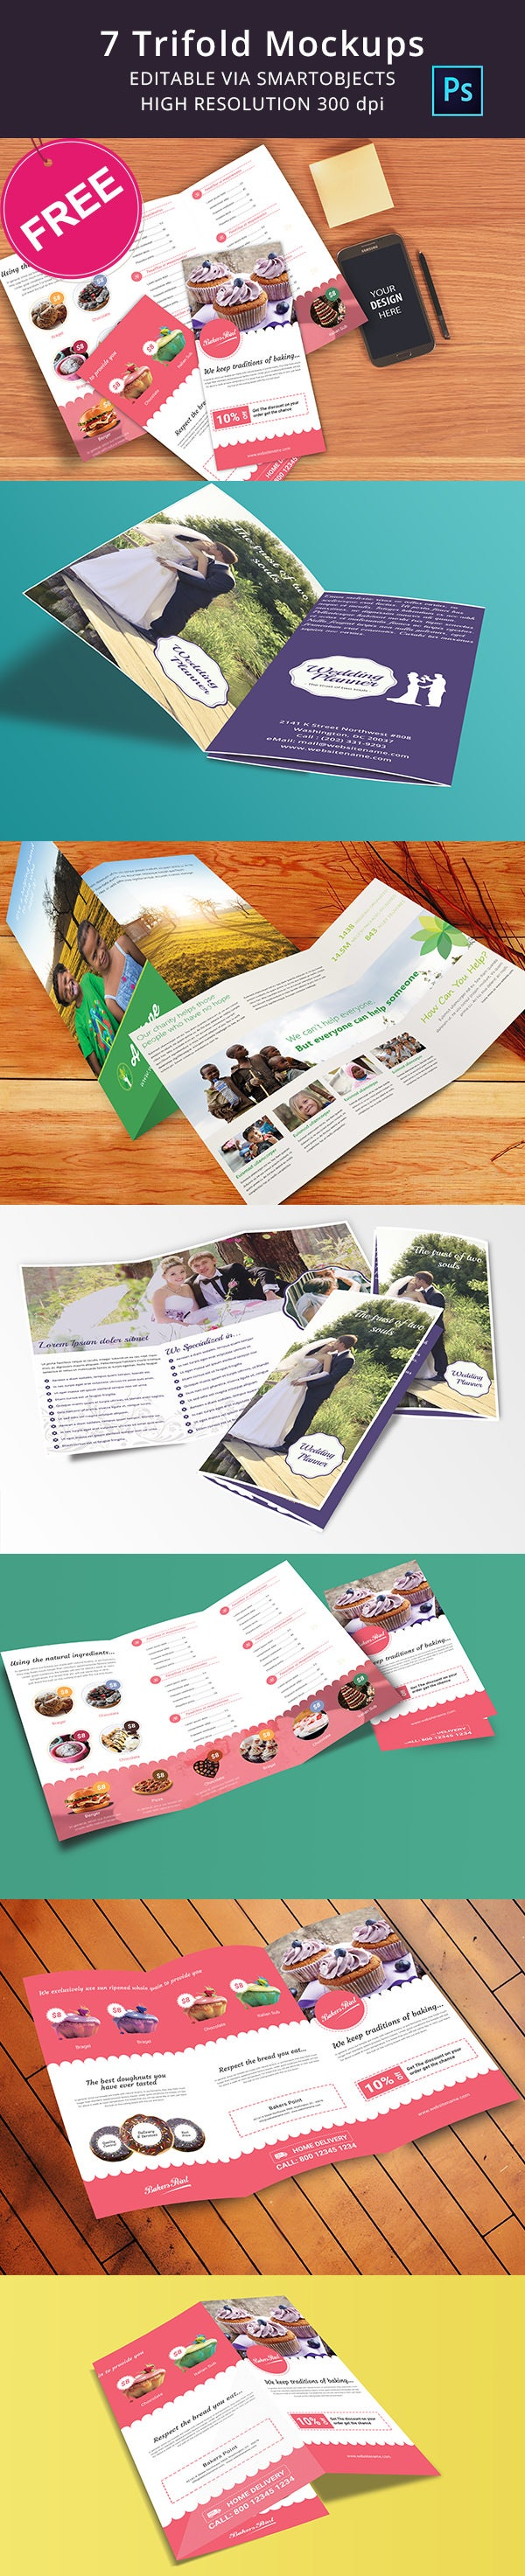 Free Download Tri Fold Mockup Templates. U003e  Free Printable Tri Fold Brochure Templates